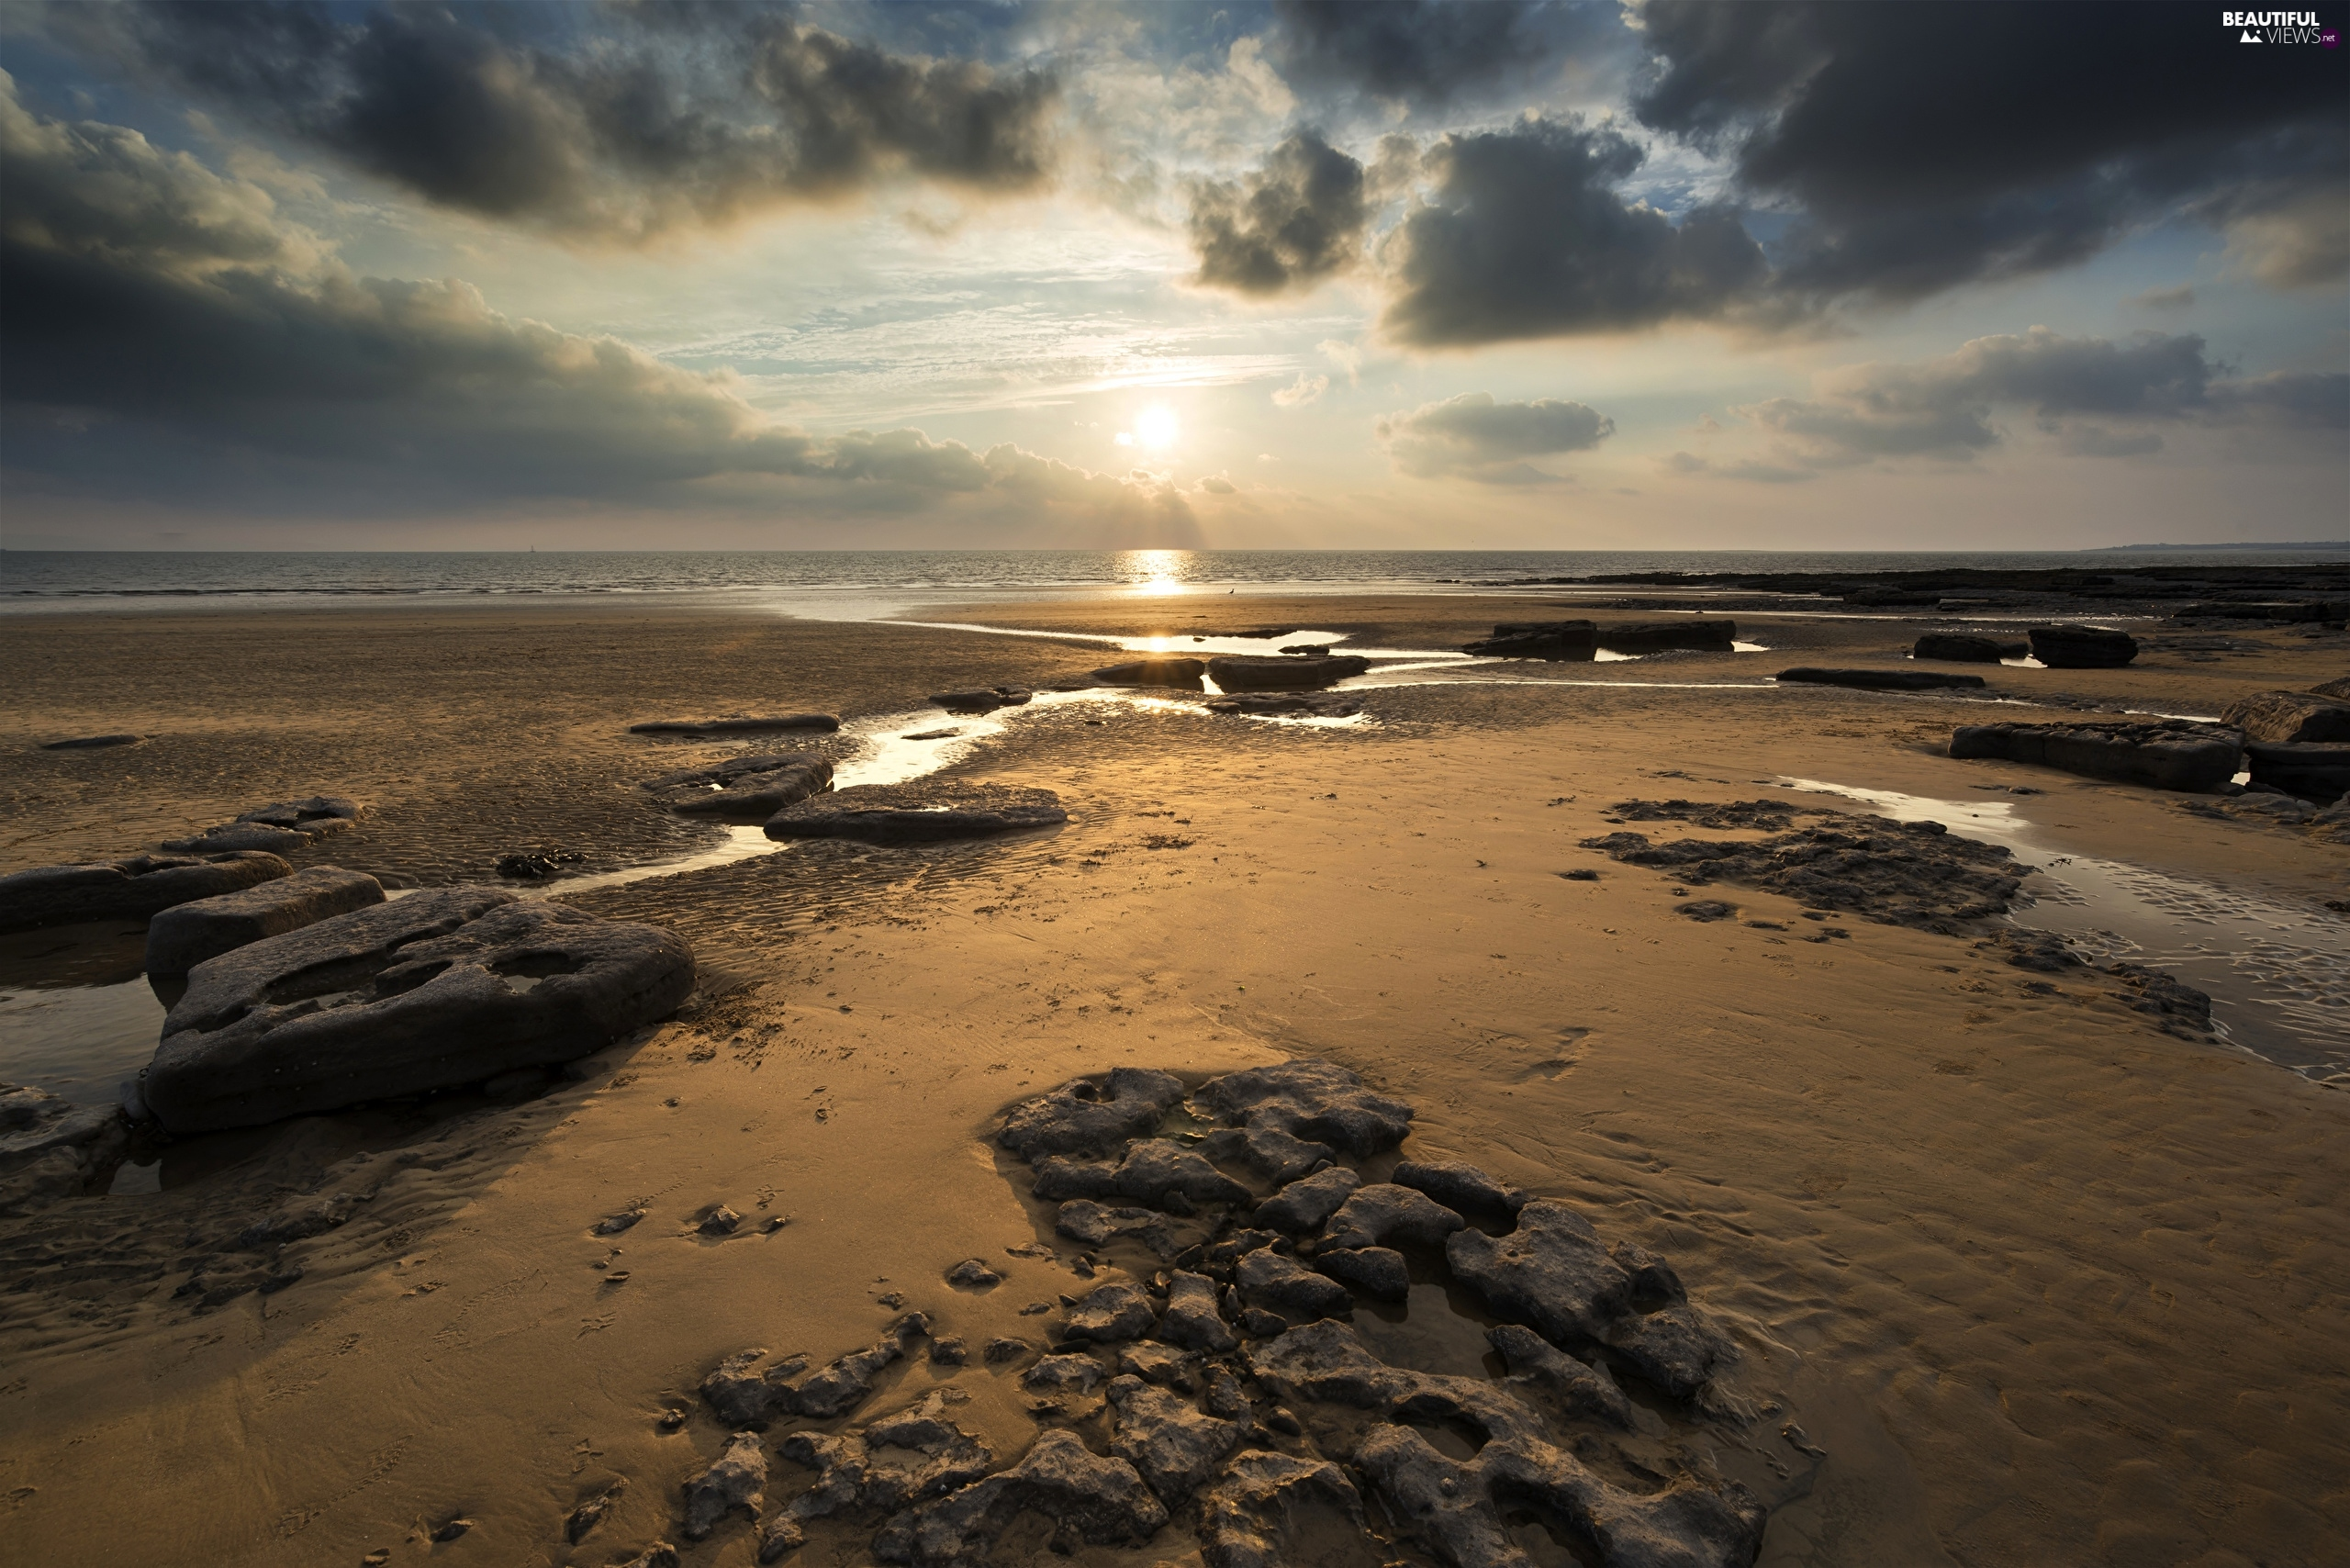 clouds, sea, Sunrise, wales, Sky, Dunraven Bay Beach, Stones